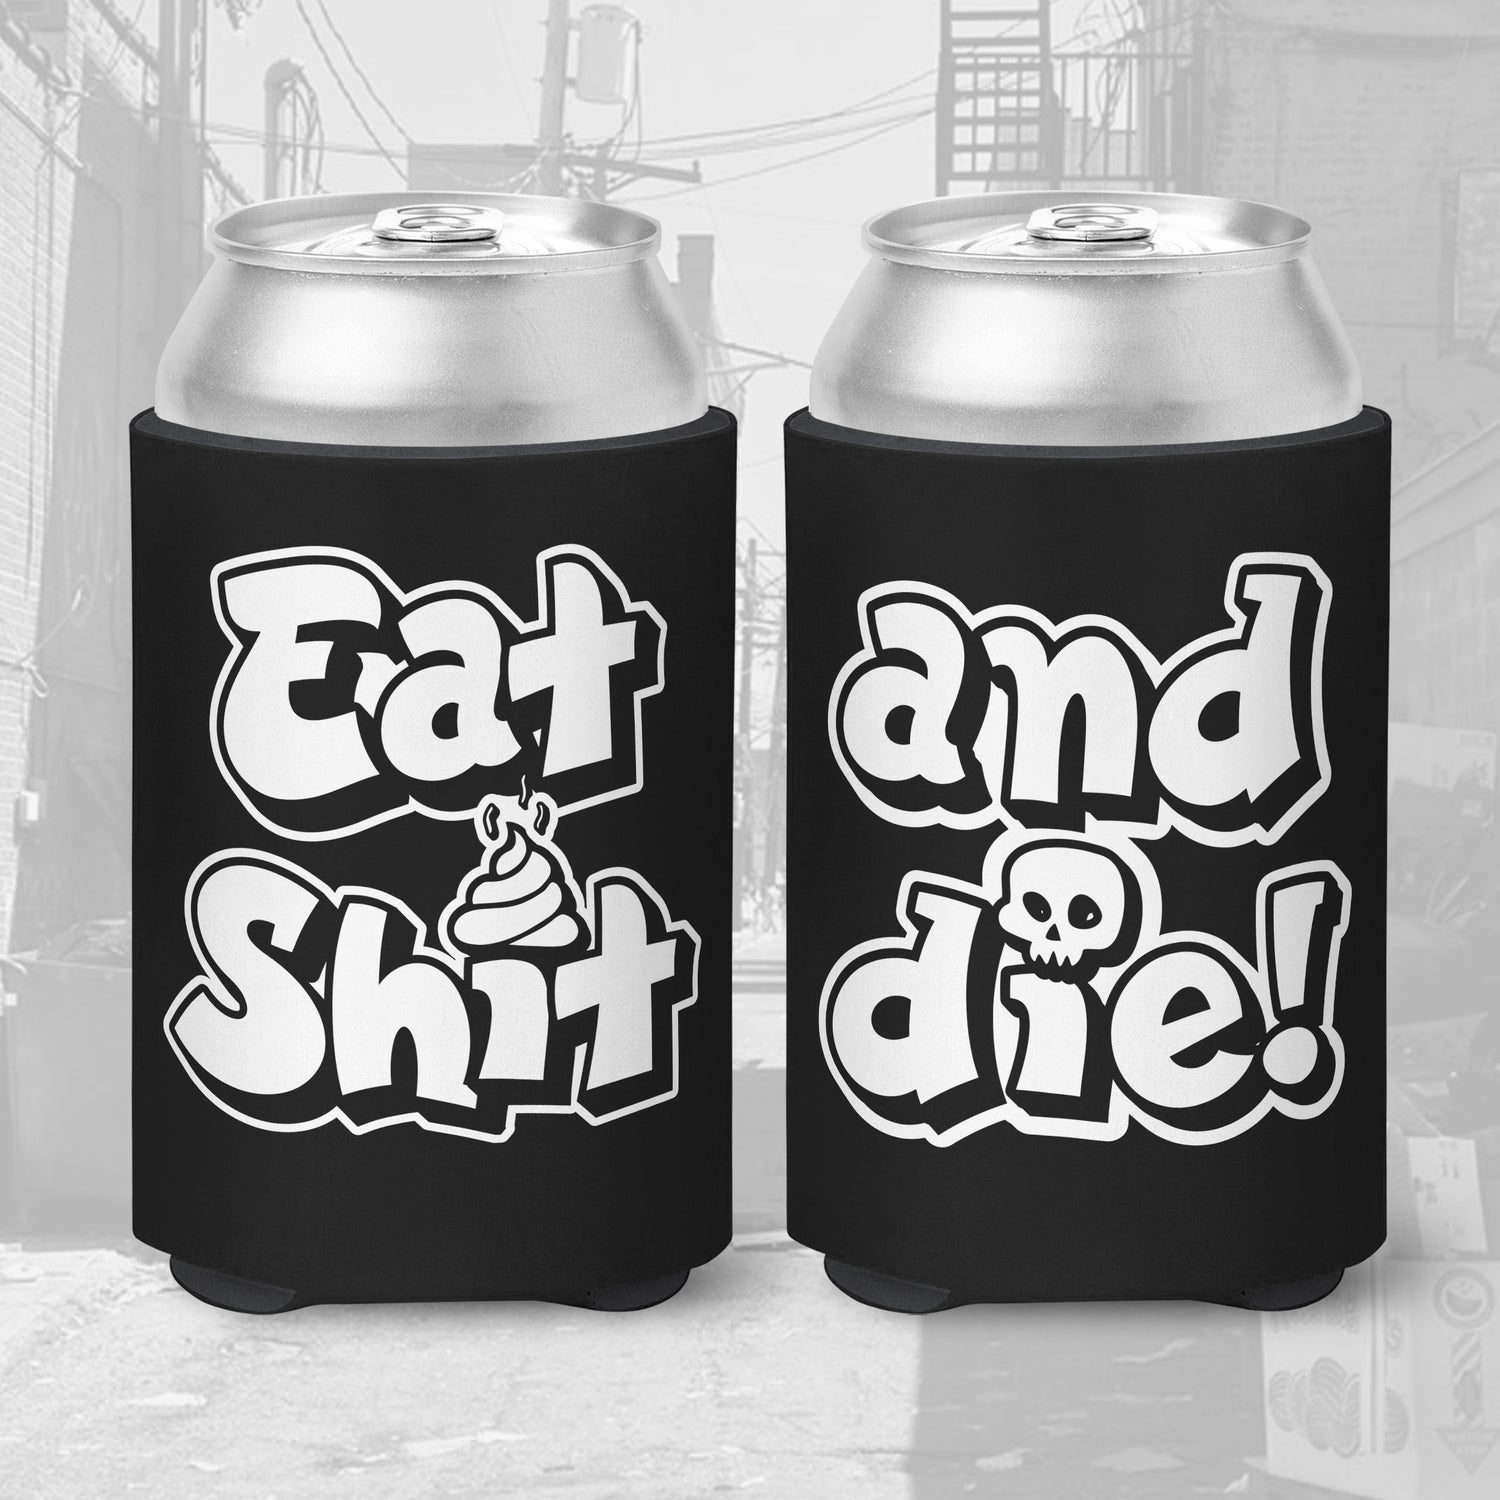 Eat Shit and Die - Koozies